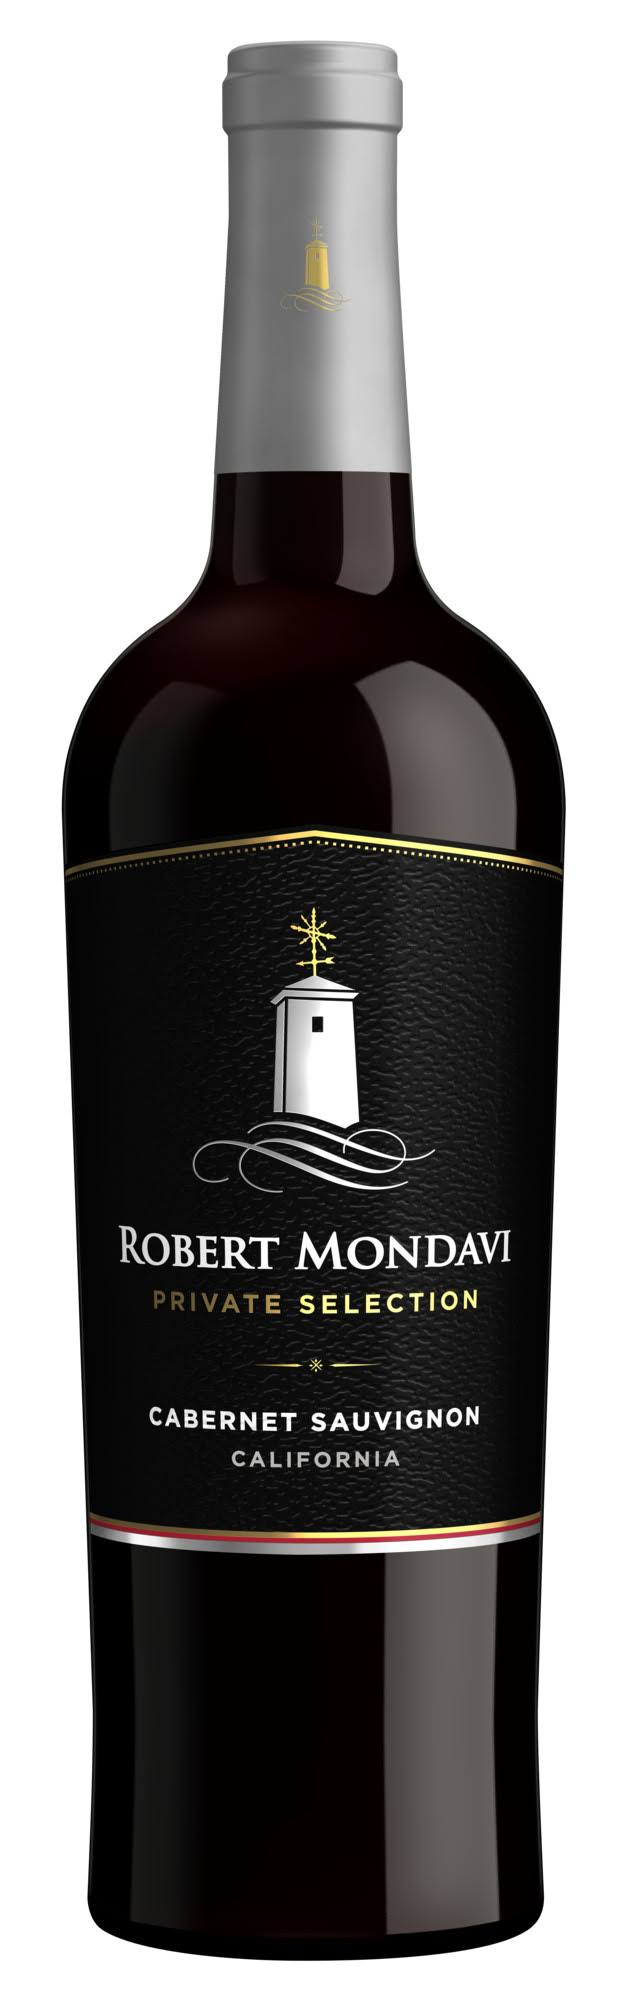 Robert Mondavi Cabernet Sauvignon, California, 2010 - 750 ml